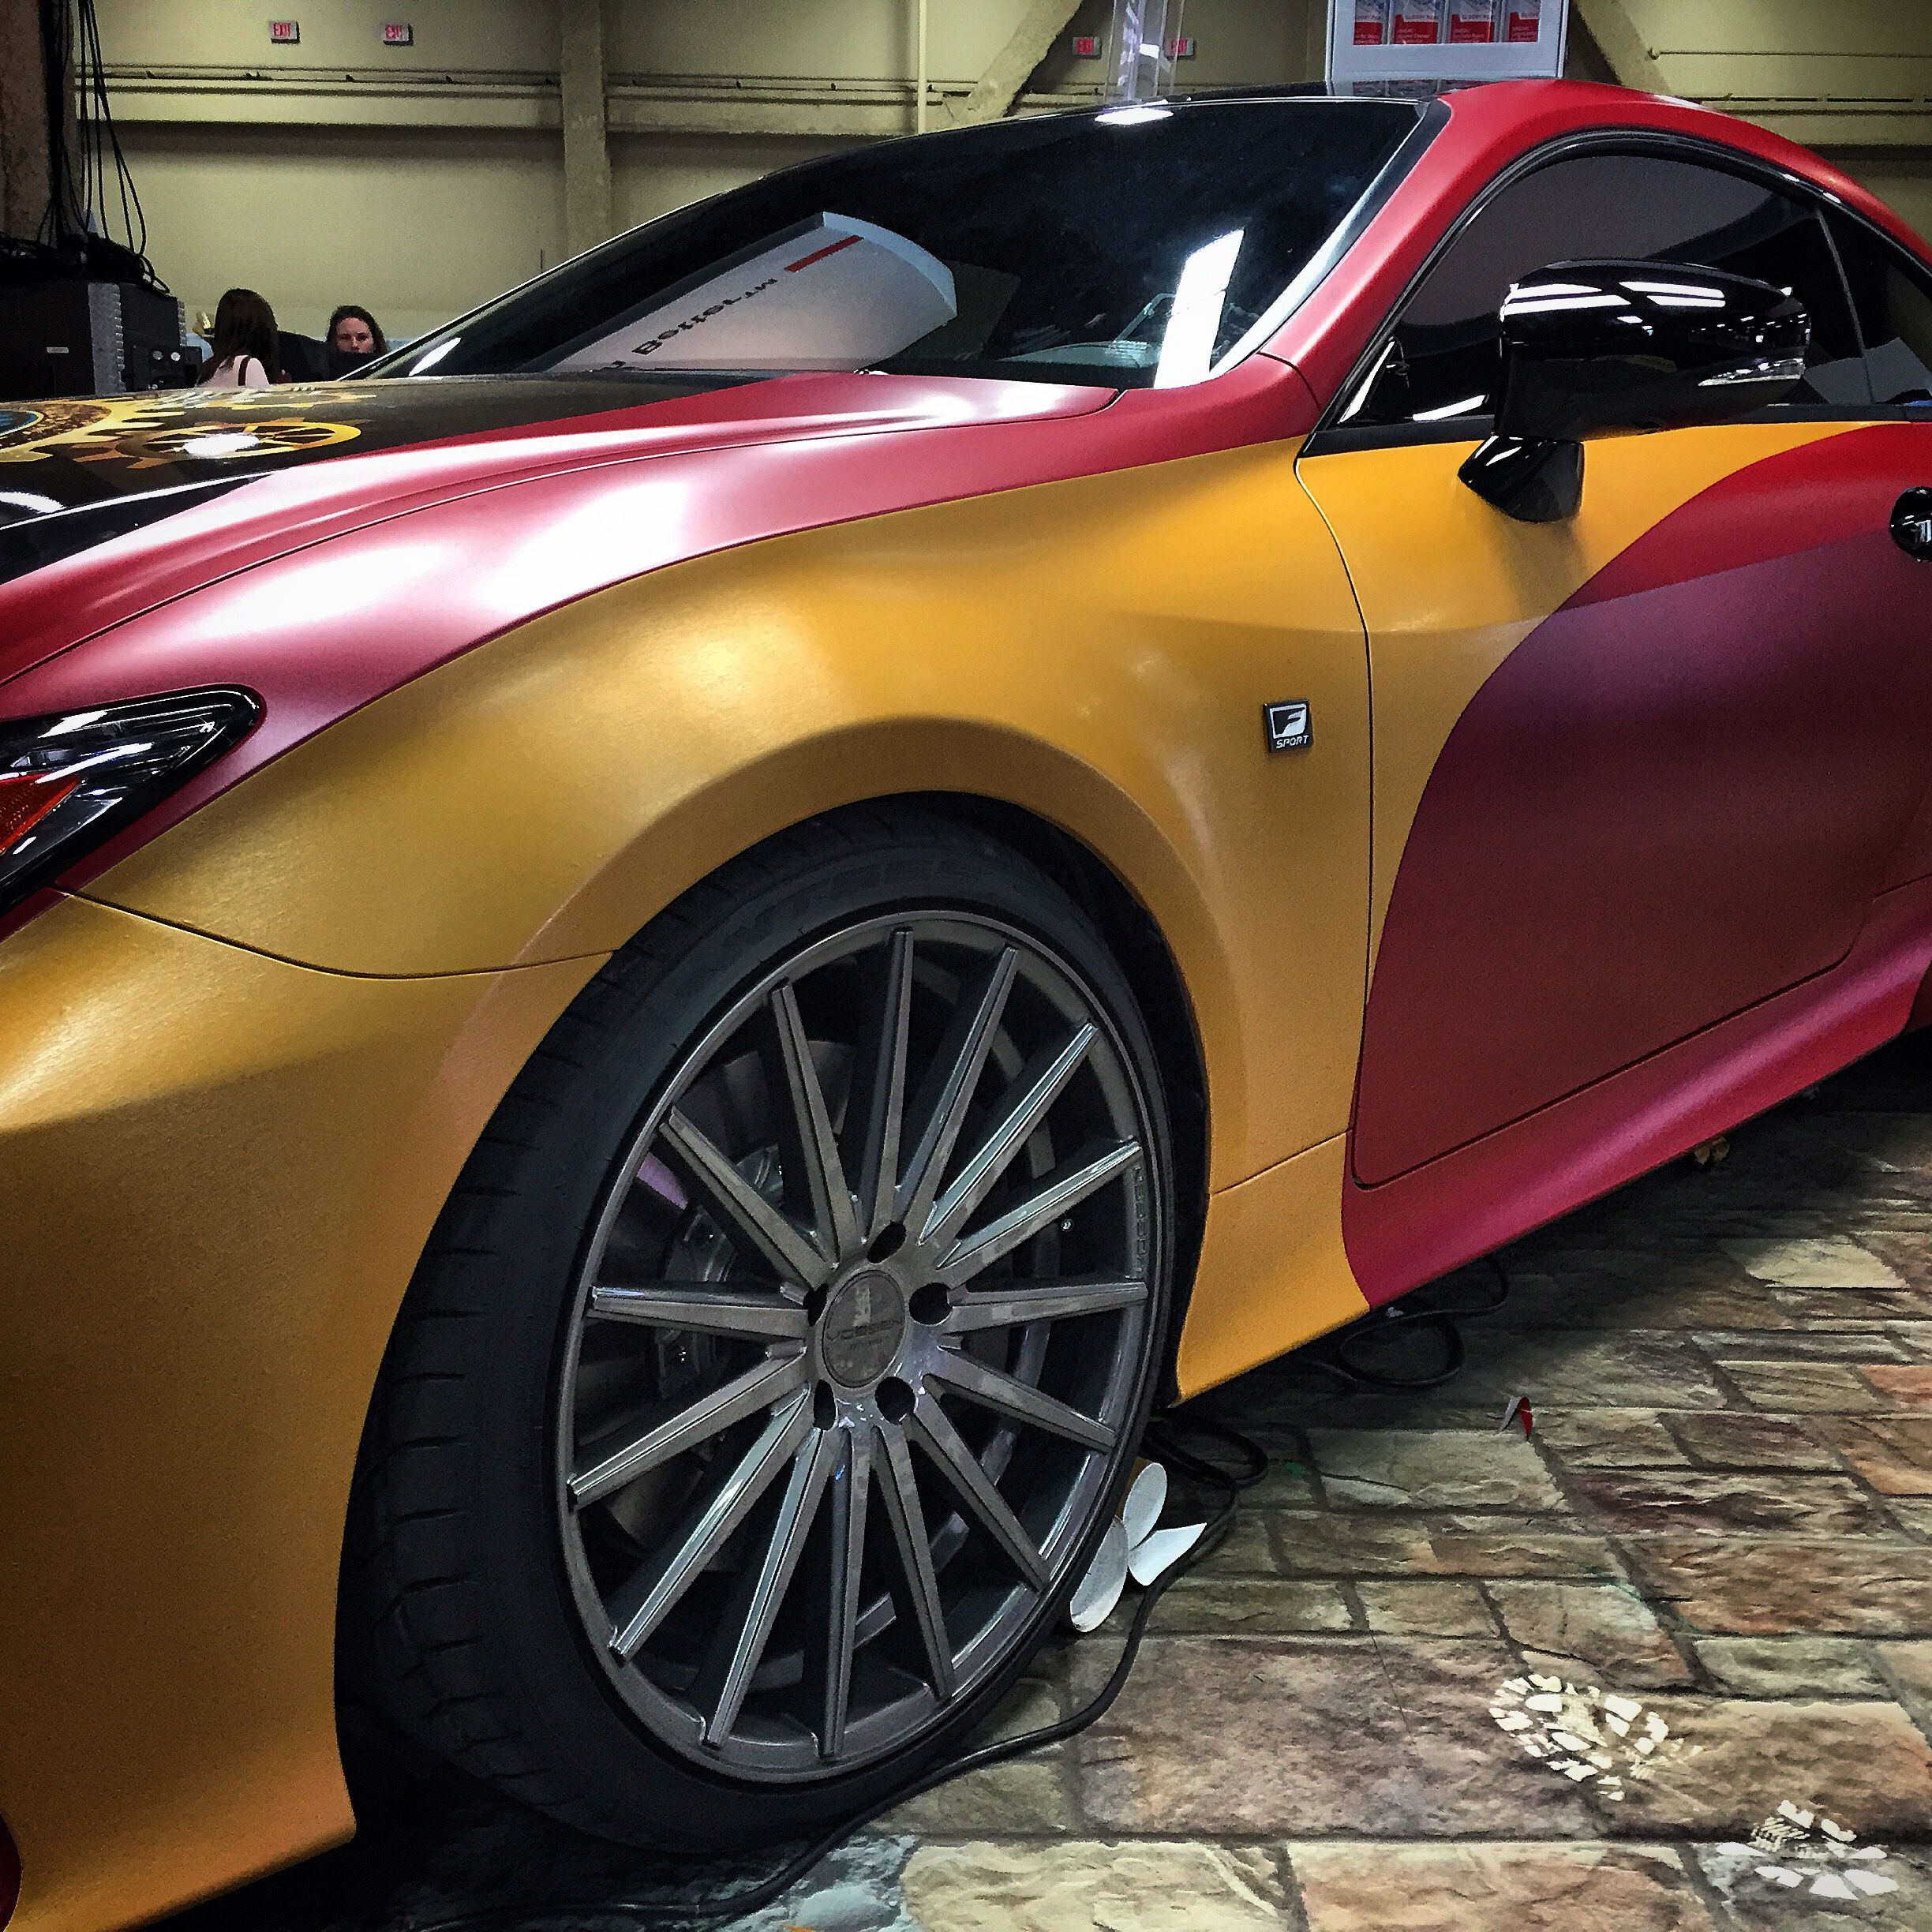 Lexus Rc 350 F Sport Price: Lexus RC 350 F Sport Wrapped In ORACAL 975 Brushed Gold